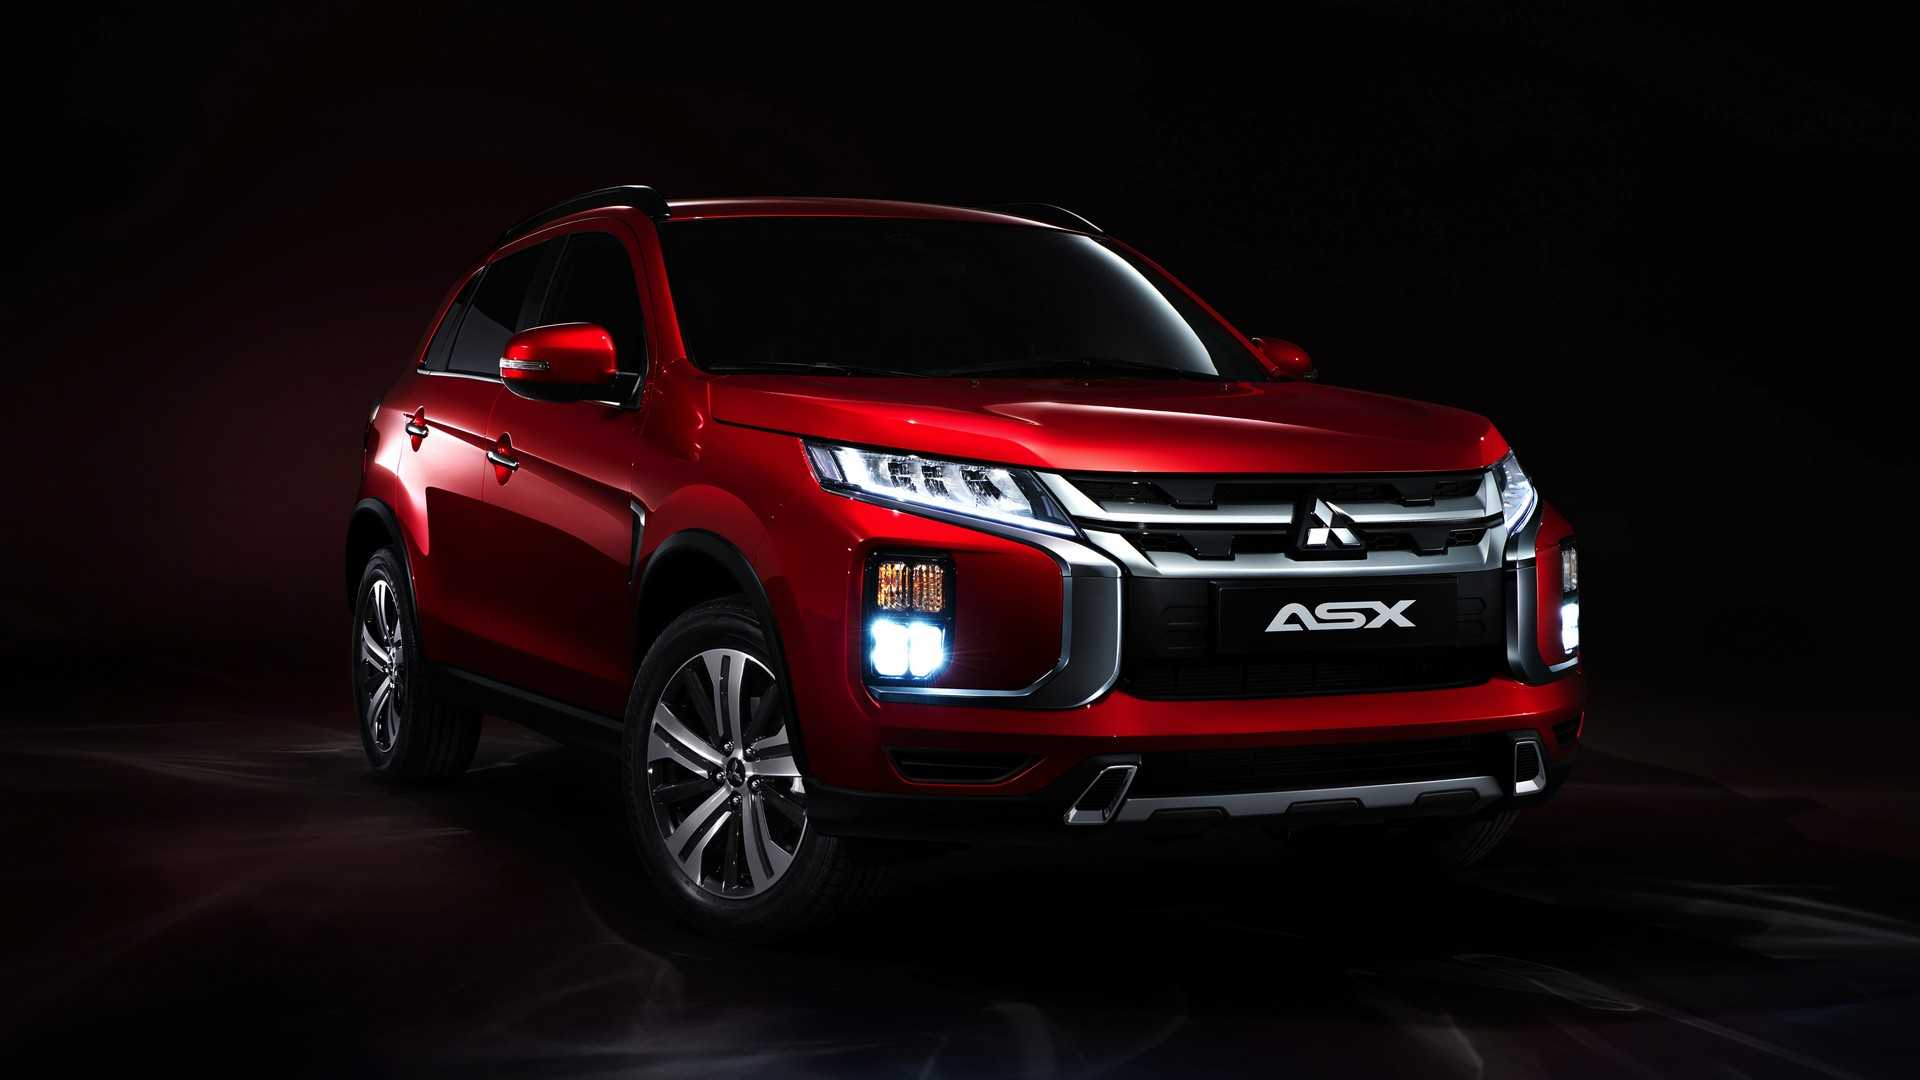 91 Gallery of Uusi Mitsubishi Asx 2020 First Drive by Uusi Mitsubishi Asx 2020